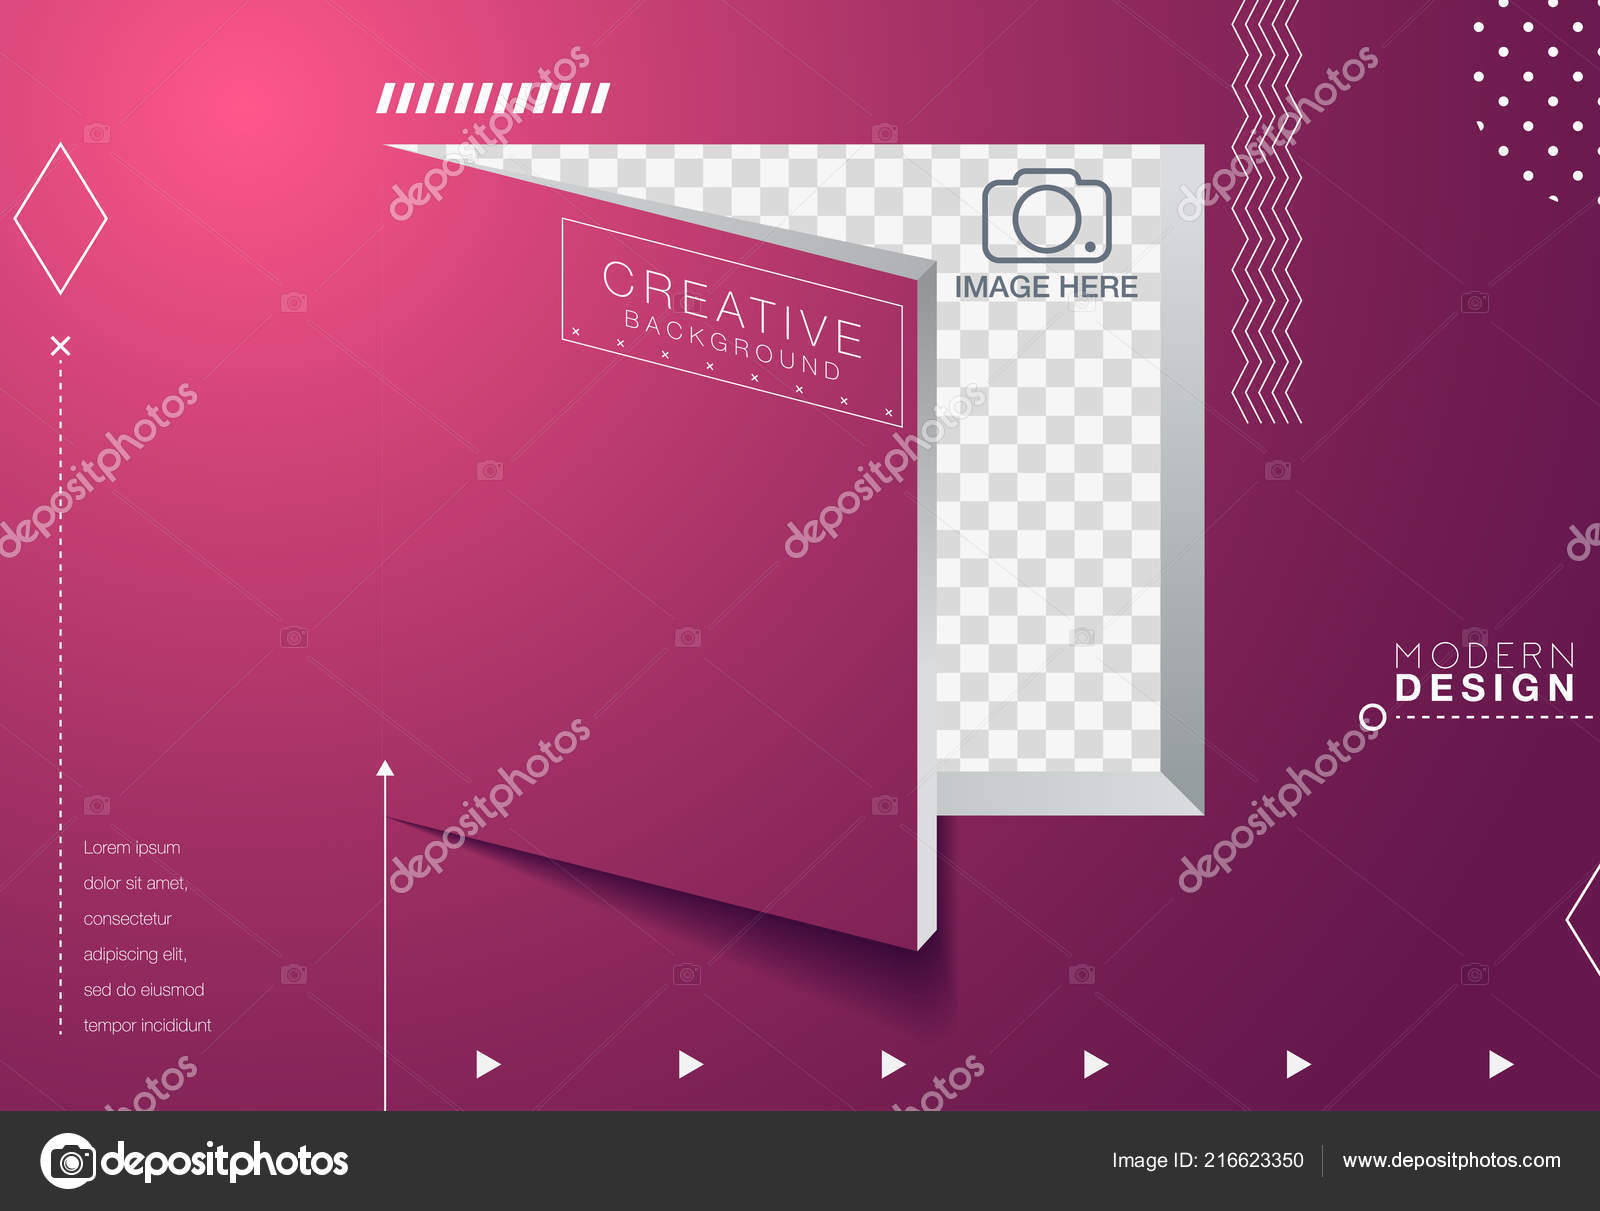 vector design template shapes trendy bright colors vetores de